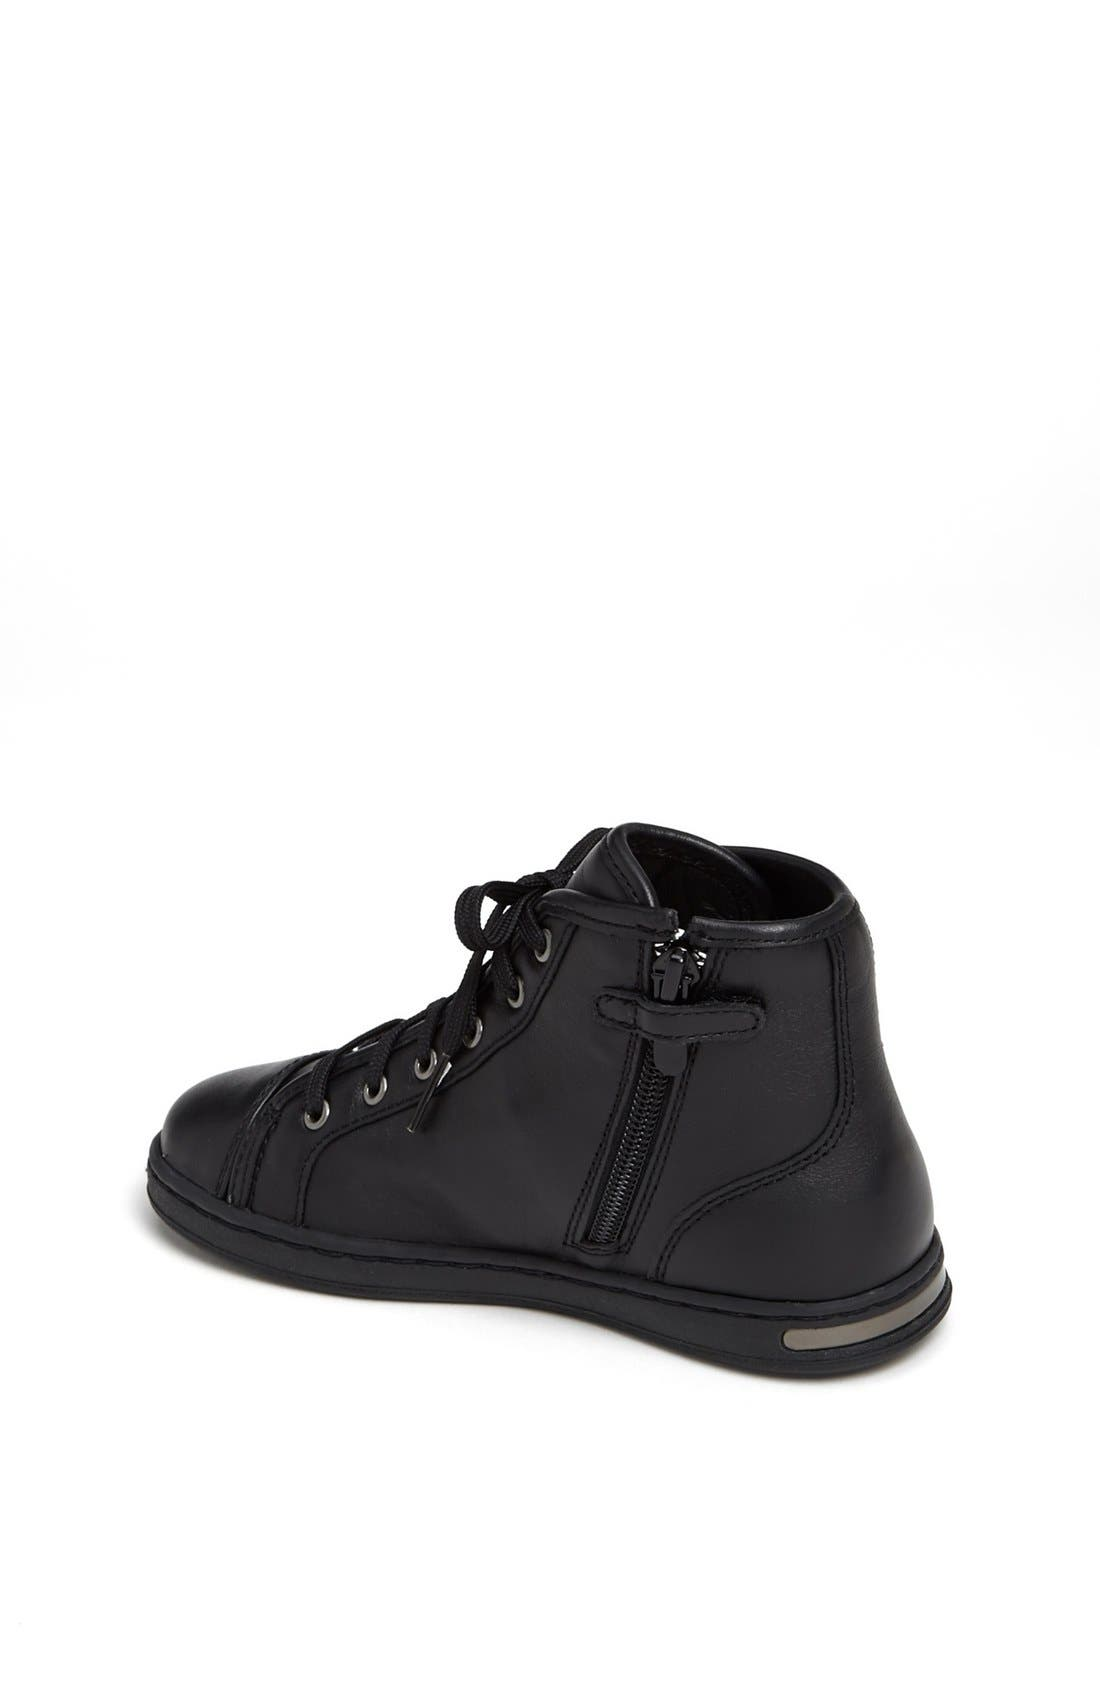 Alternate Image 2  - Dolce&Gabbana High Top Sneaker (Toddler & Little Kid)